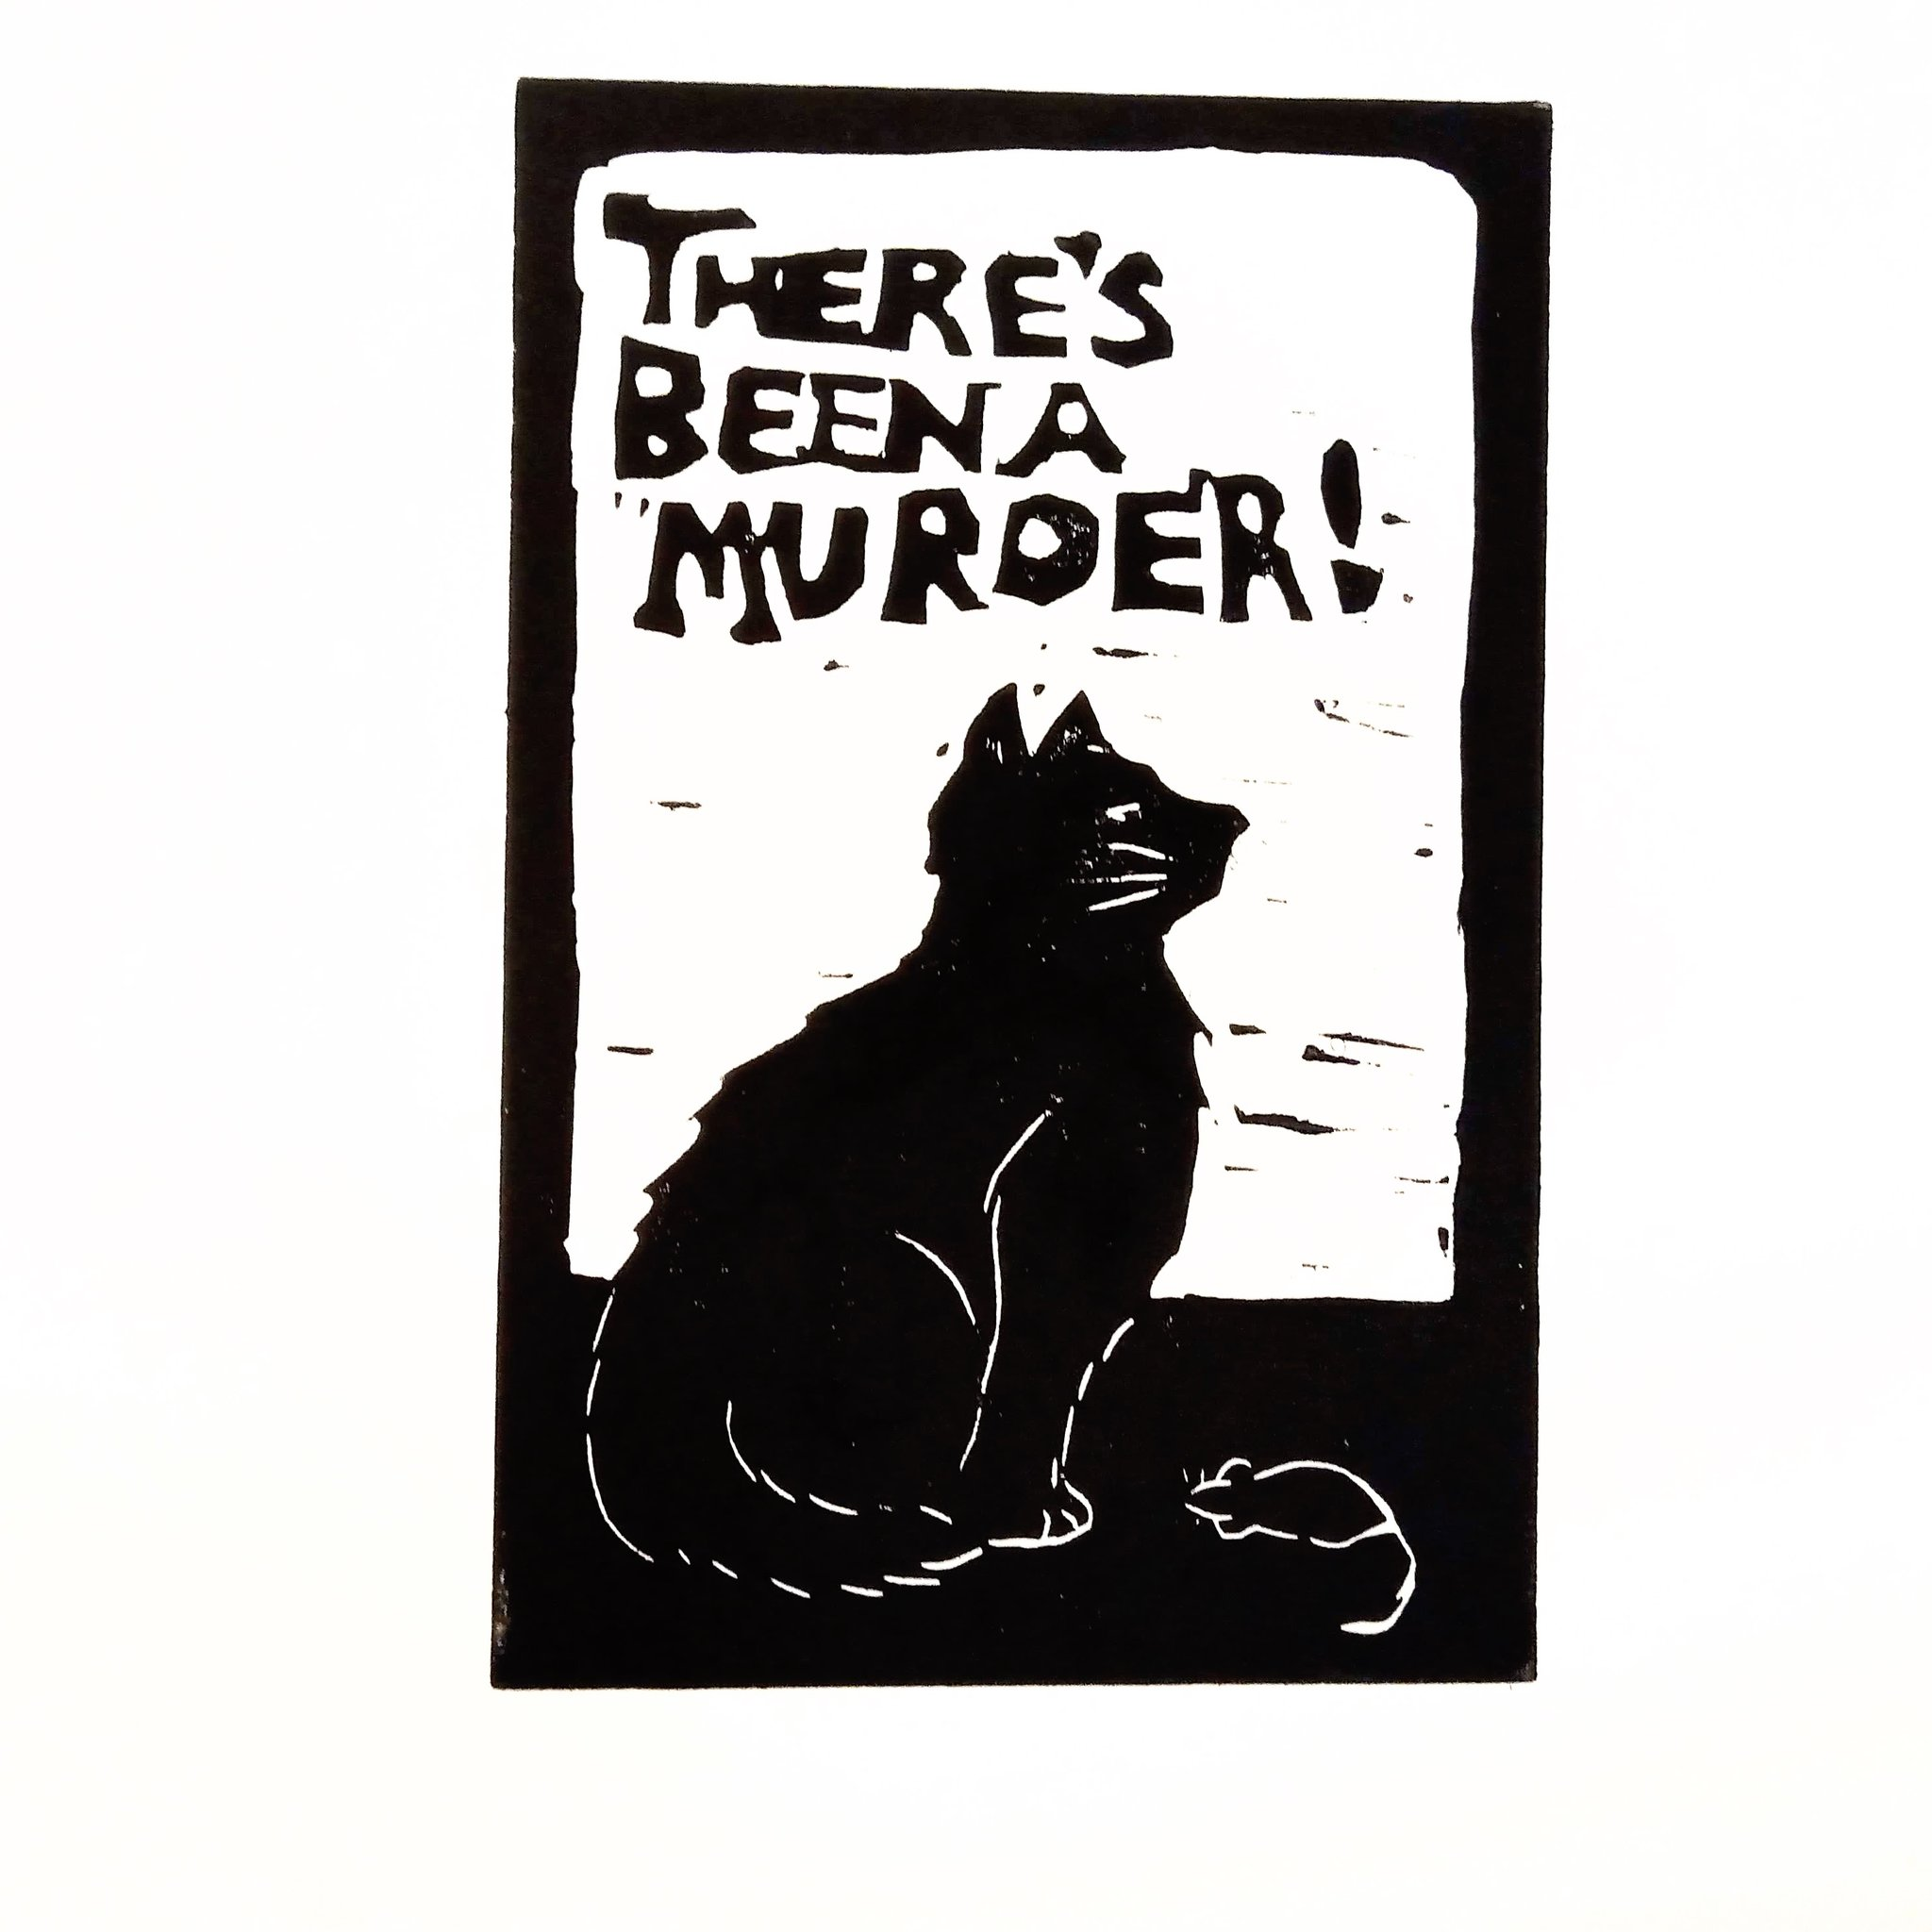 There's been a muder black cat